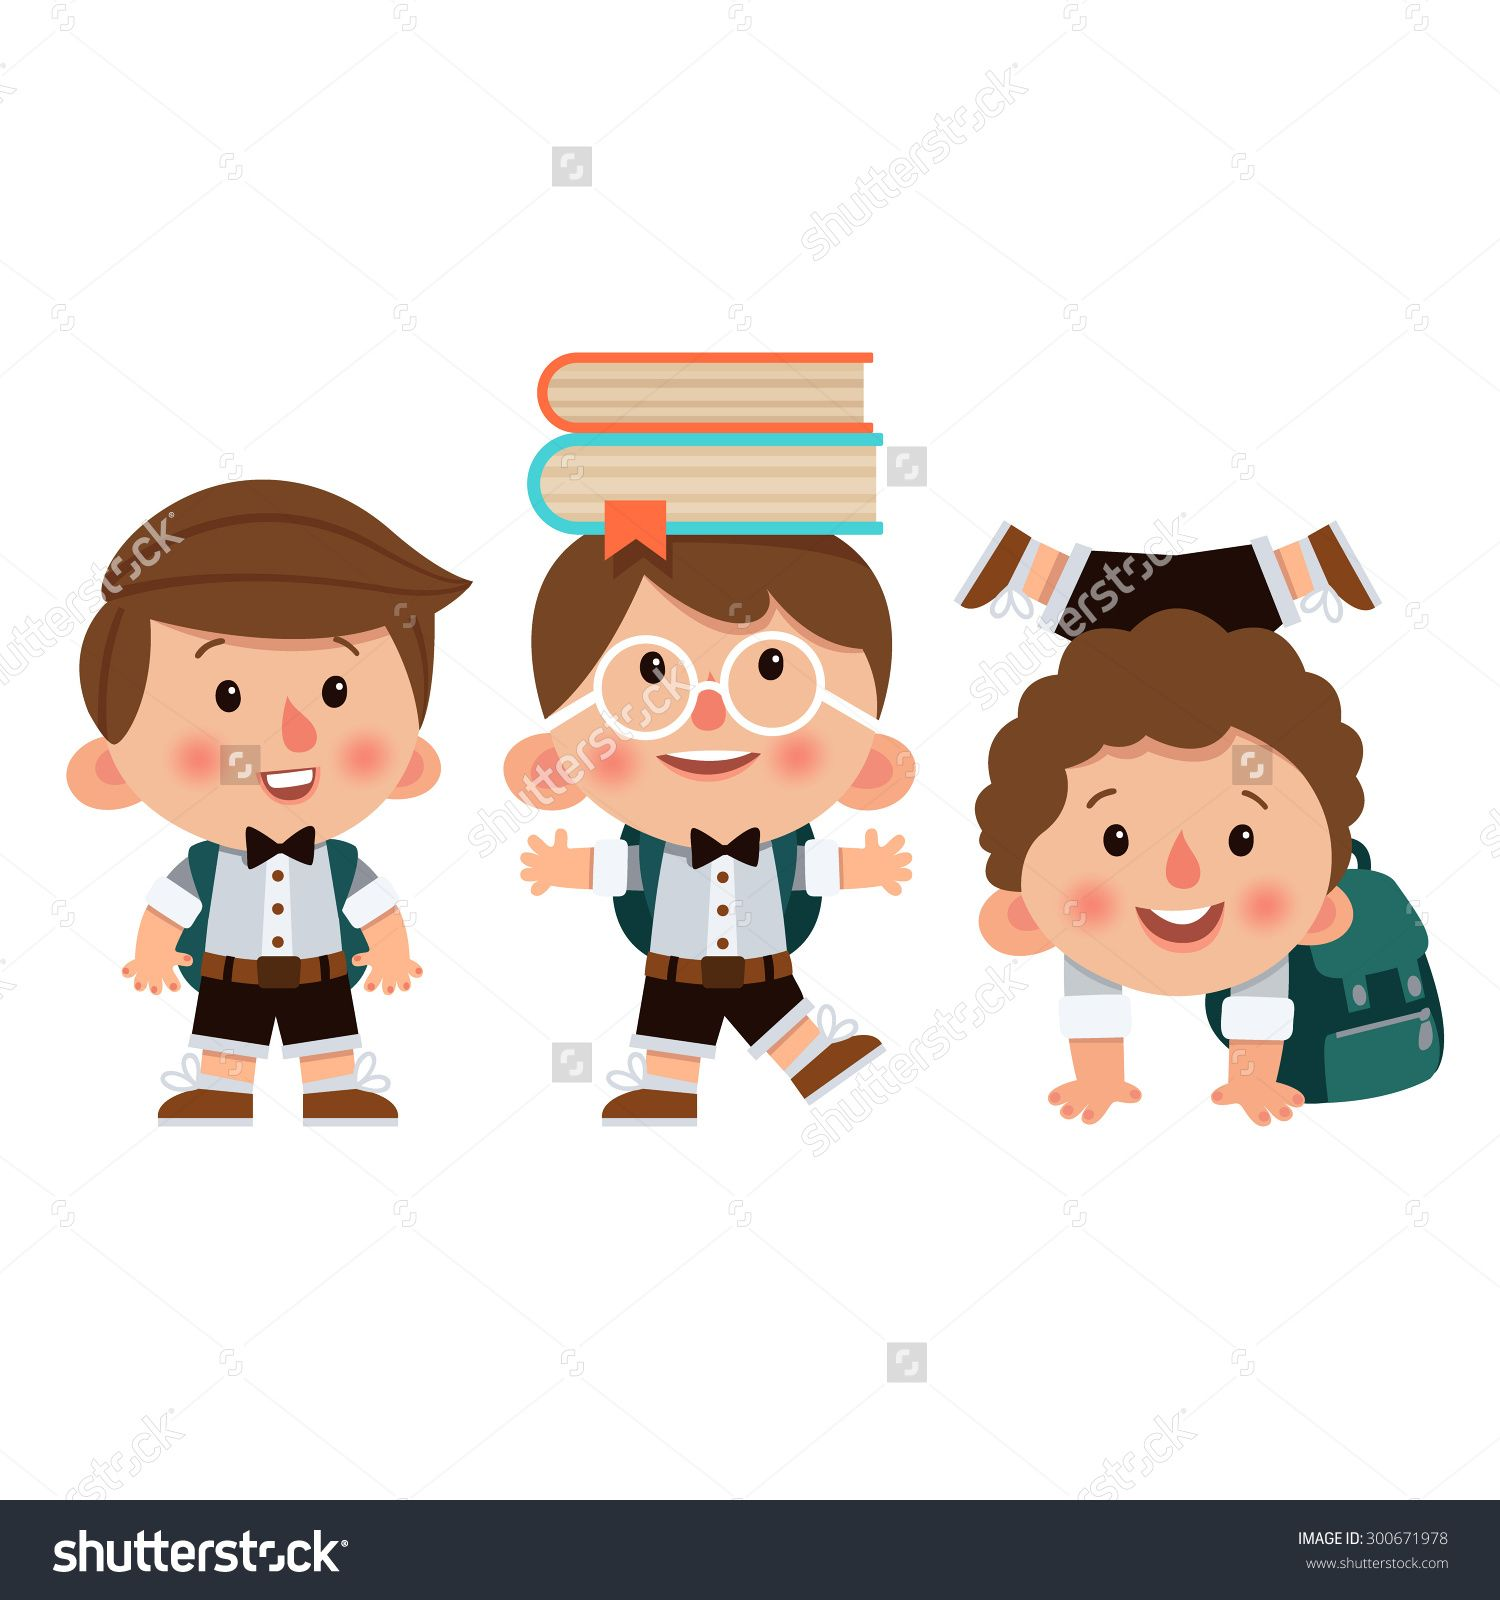 stock vector set of cartoon characters boys with different